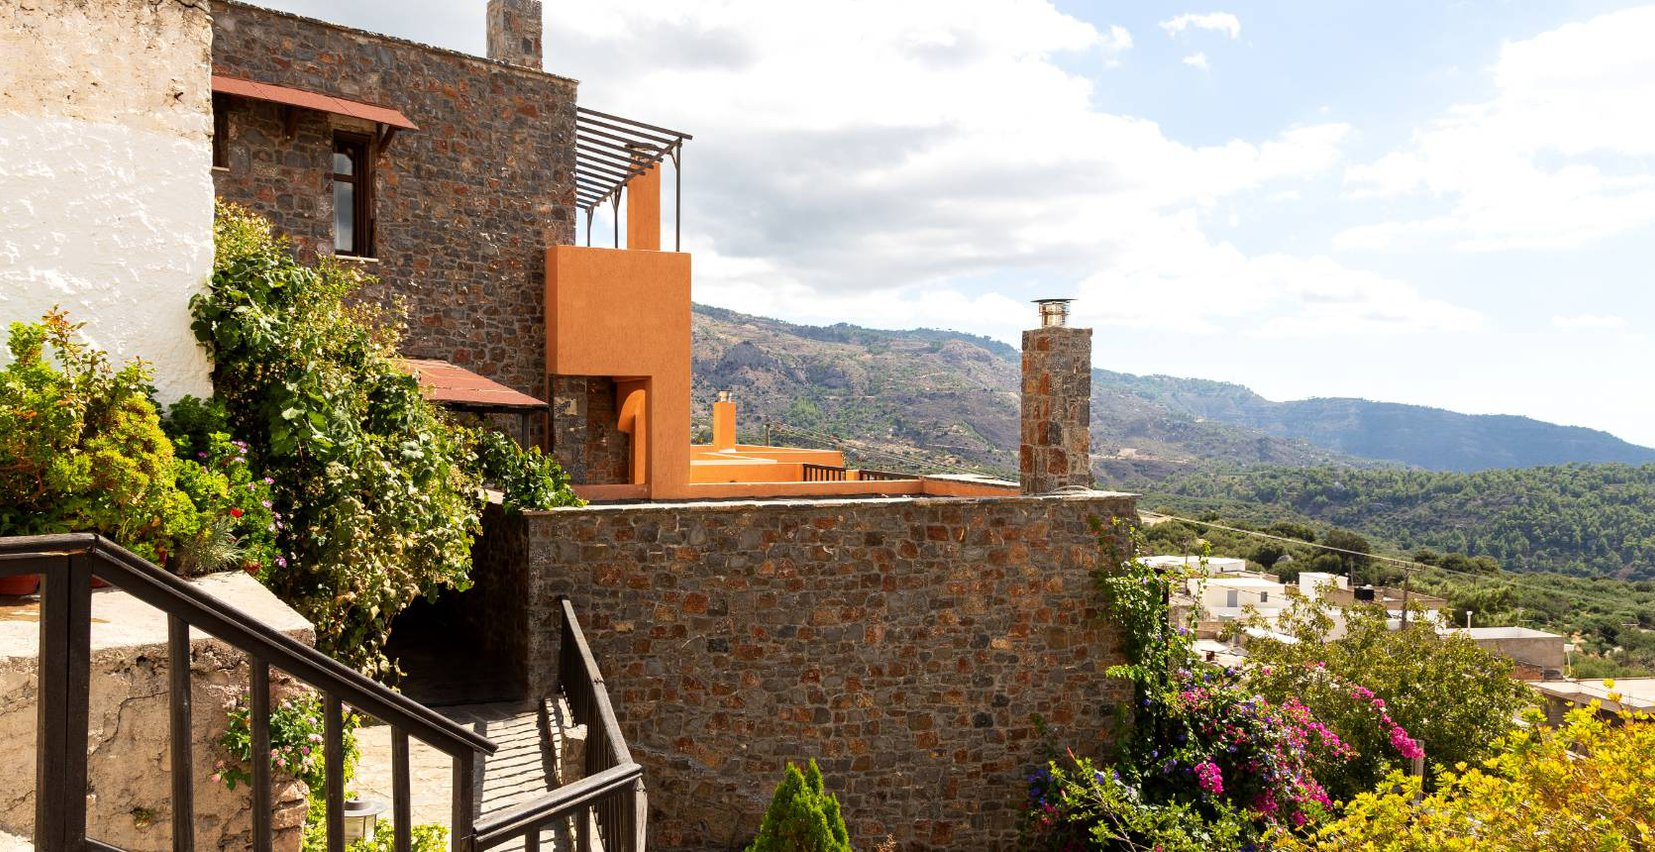 The exterior of the residences of Mala Villa with the greenery and the mountains in the background